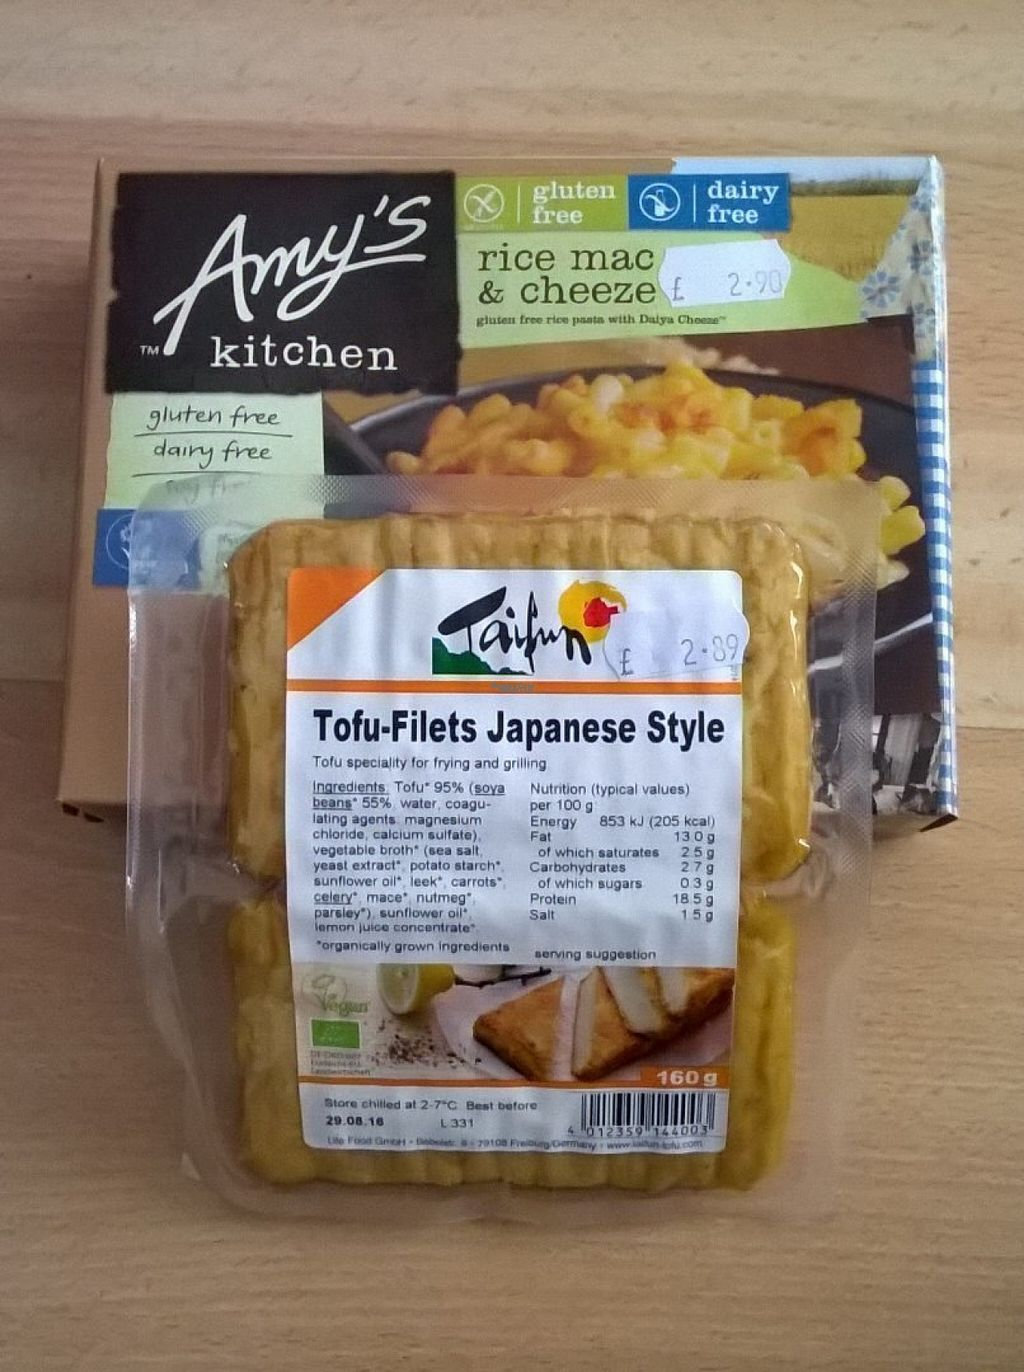 """Photo of Alternative Stores  by <a href=""""/members/profile/deadpledge"""">deadpledge</a> <br/>Vegan mac and cheese and tofu fillets <br/> August 15, 2016  - <a href='/contact/abuse/image/15169/168899'>Report</a>"""